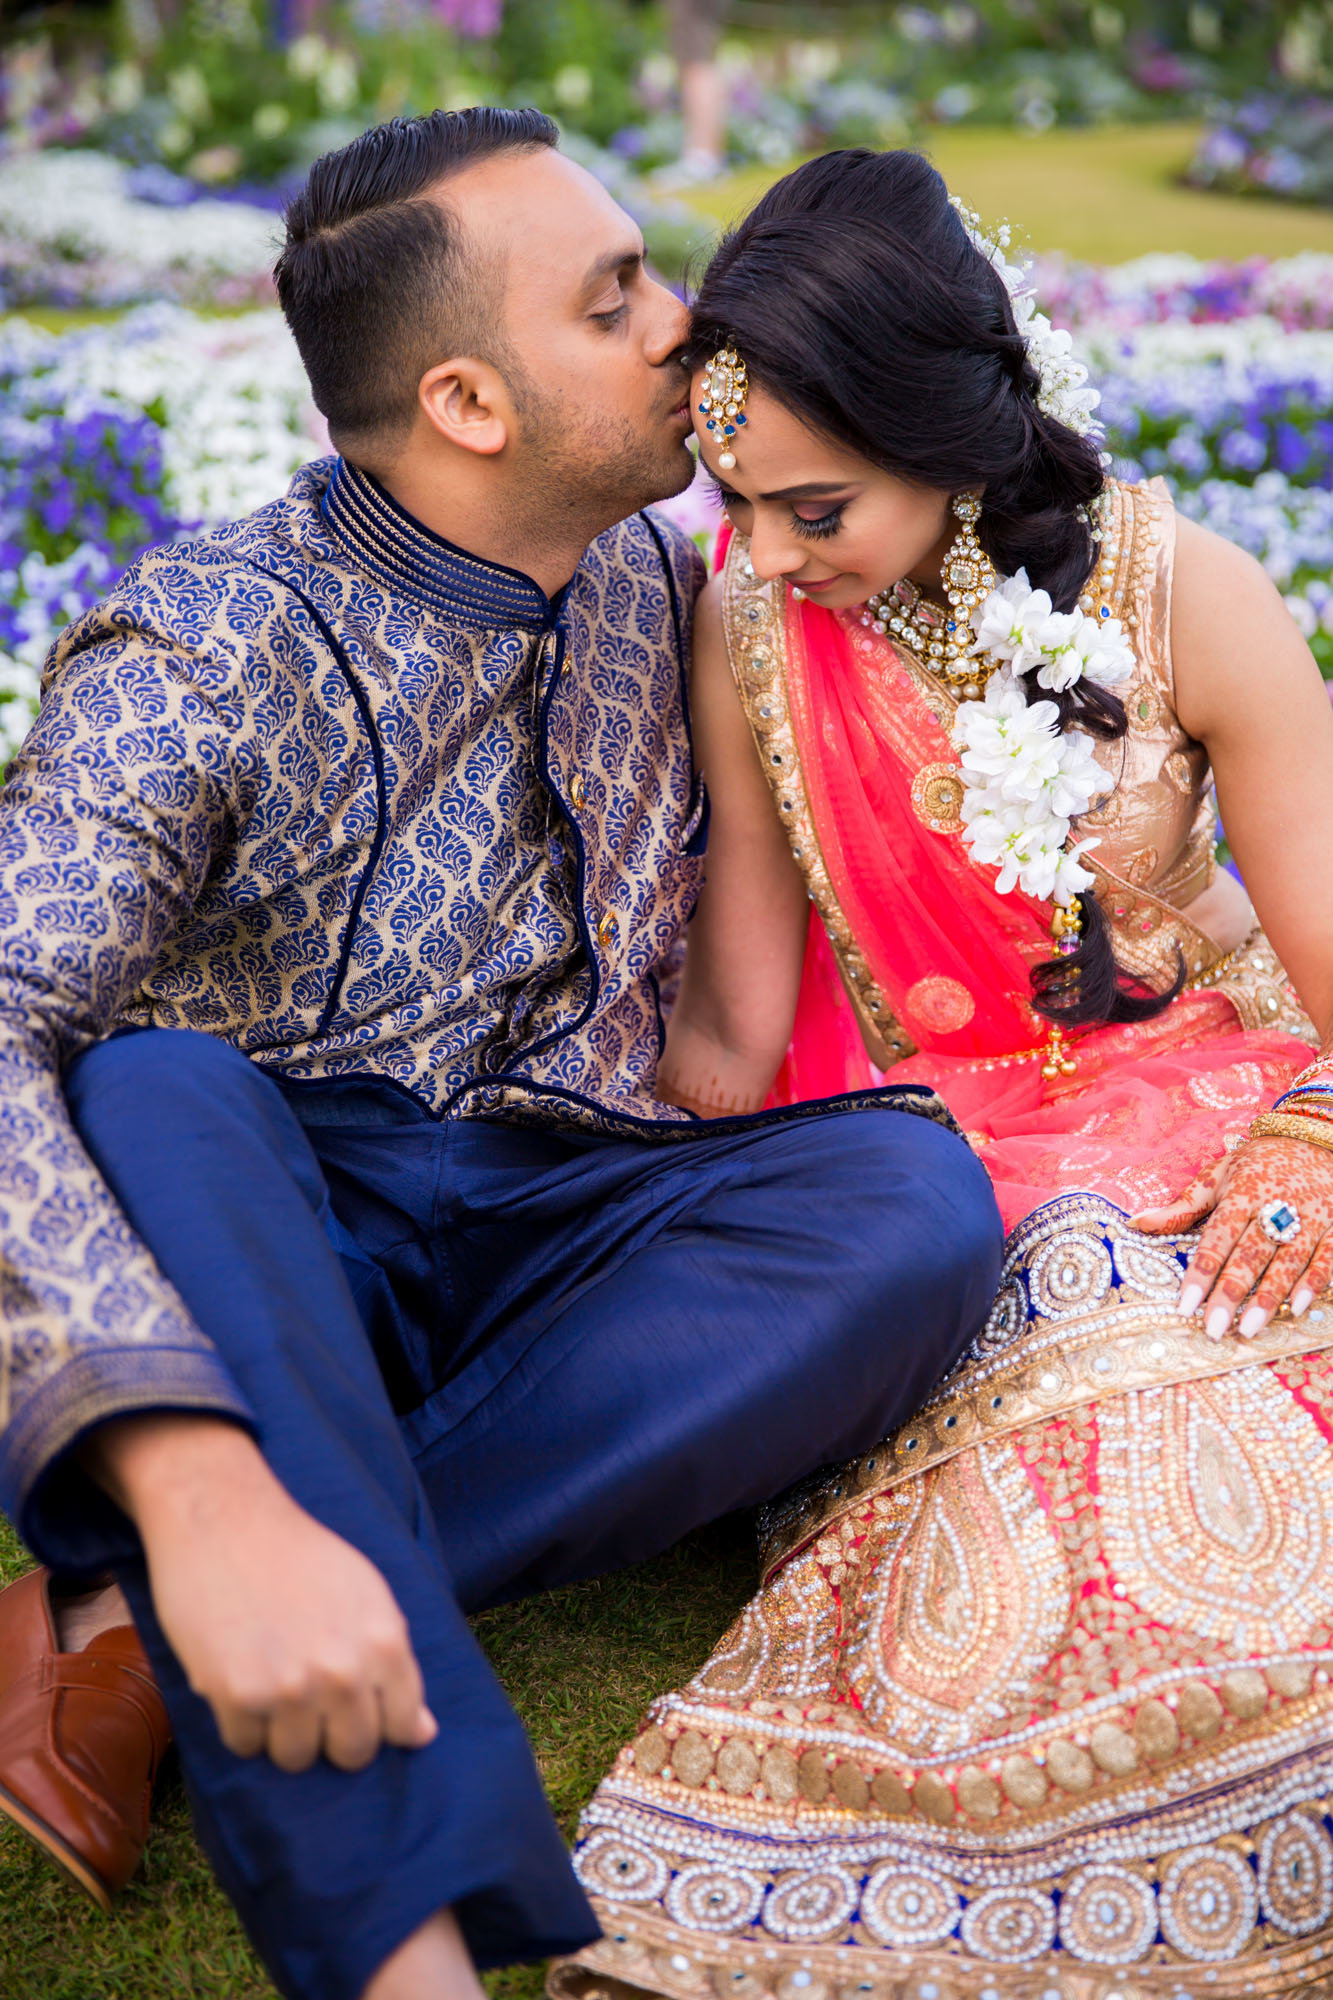 Manisha_Rohil_EngagementCeremony_CorsoNorthlakes_PhotographerAOsetroff_Highlights_Web-8